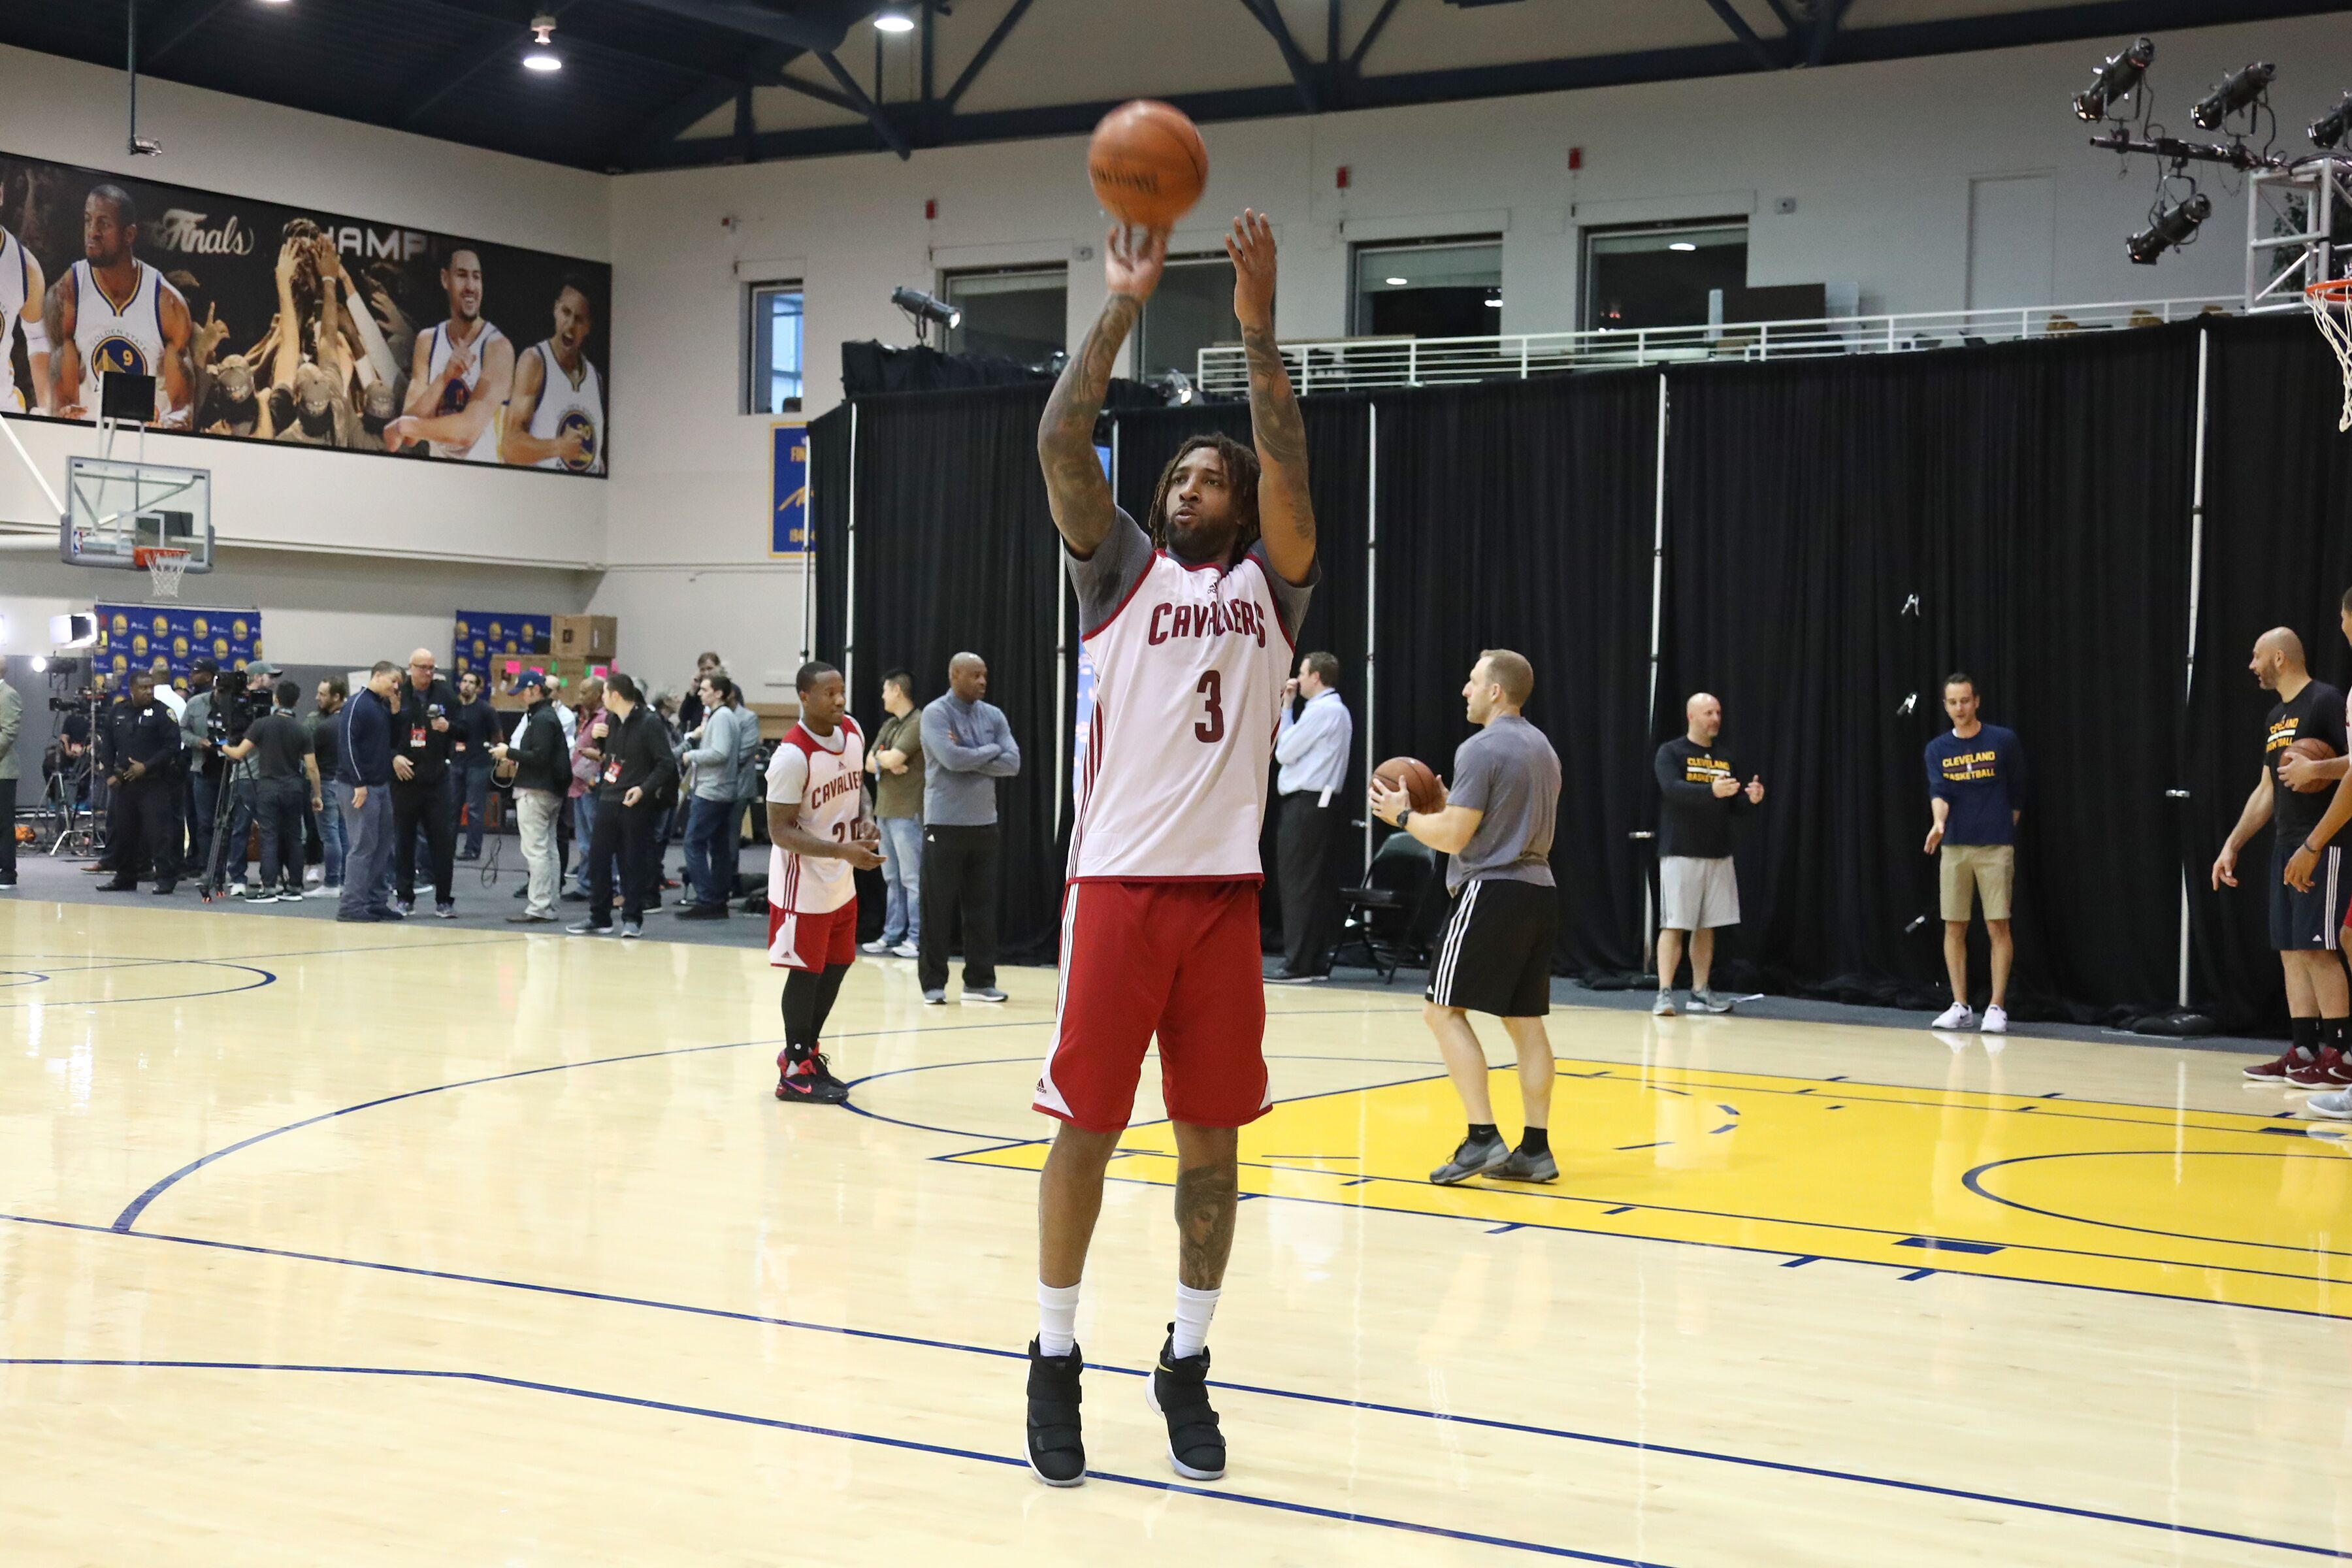 694957934-2017-nba-finals-practice-and-media-availability.jpg